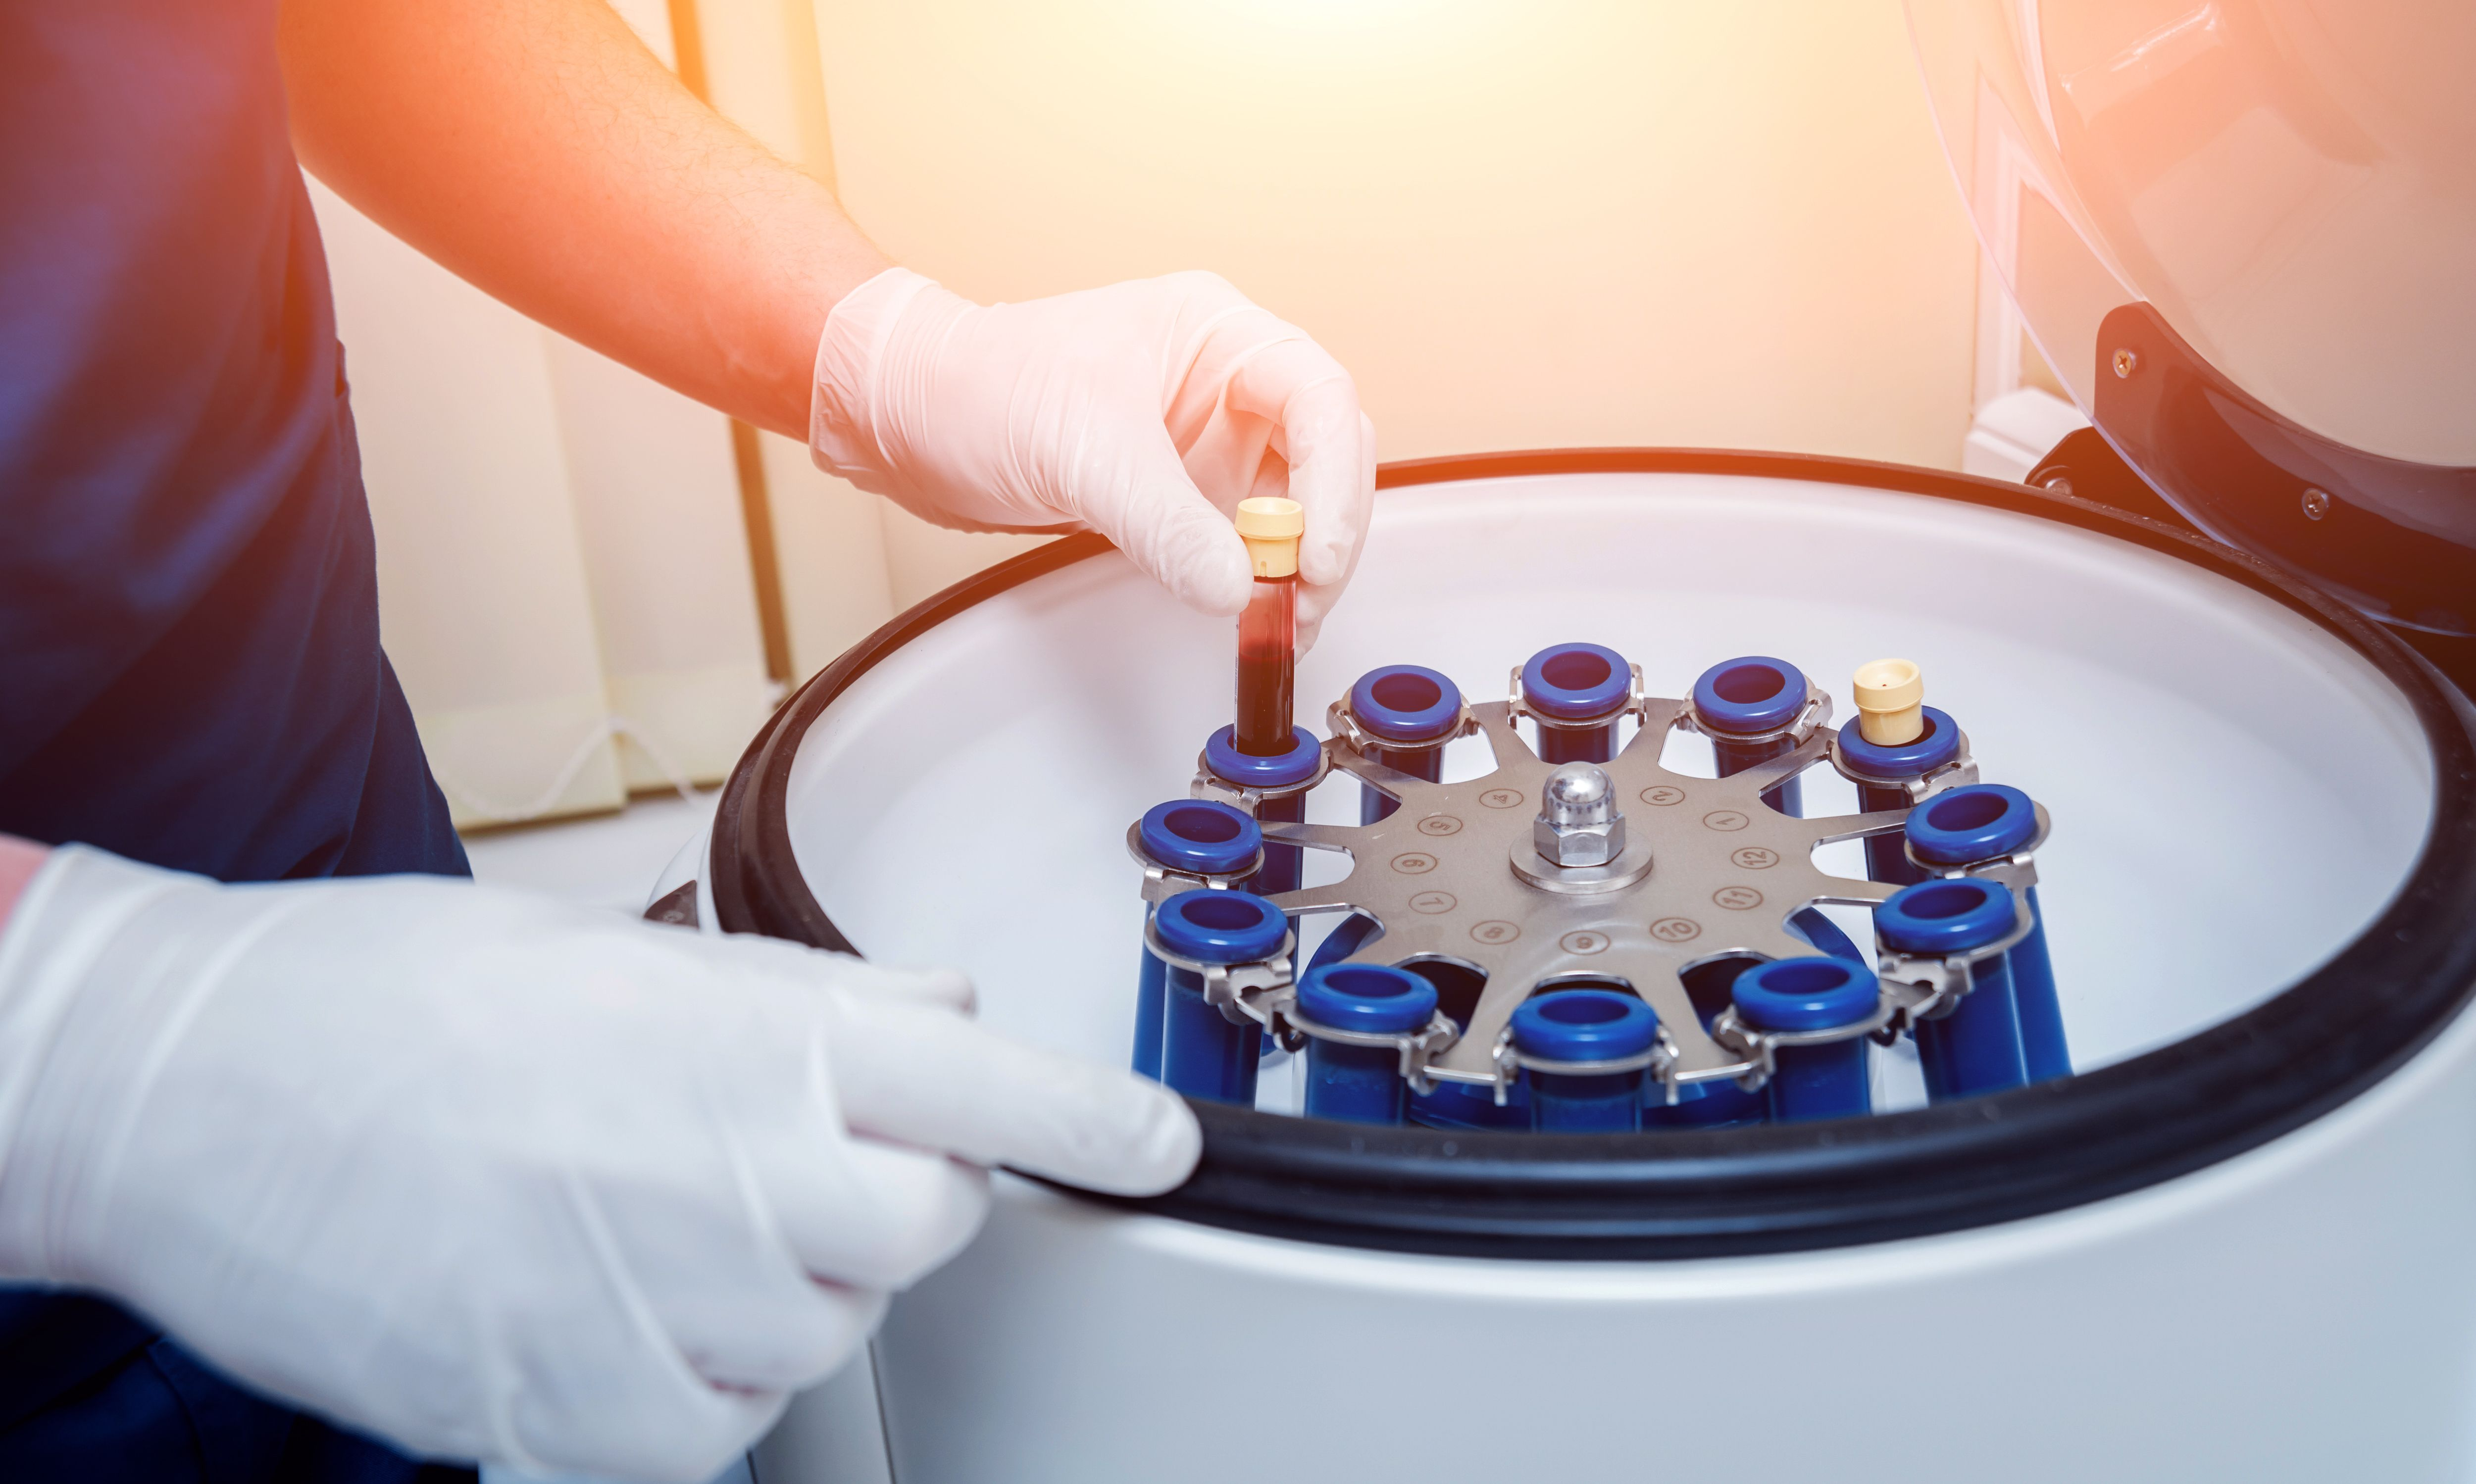 Blood samples in a centrifuge